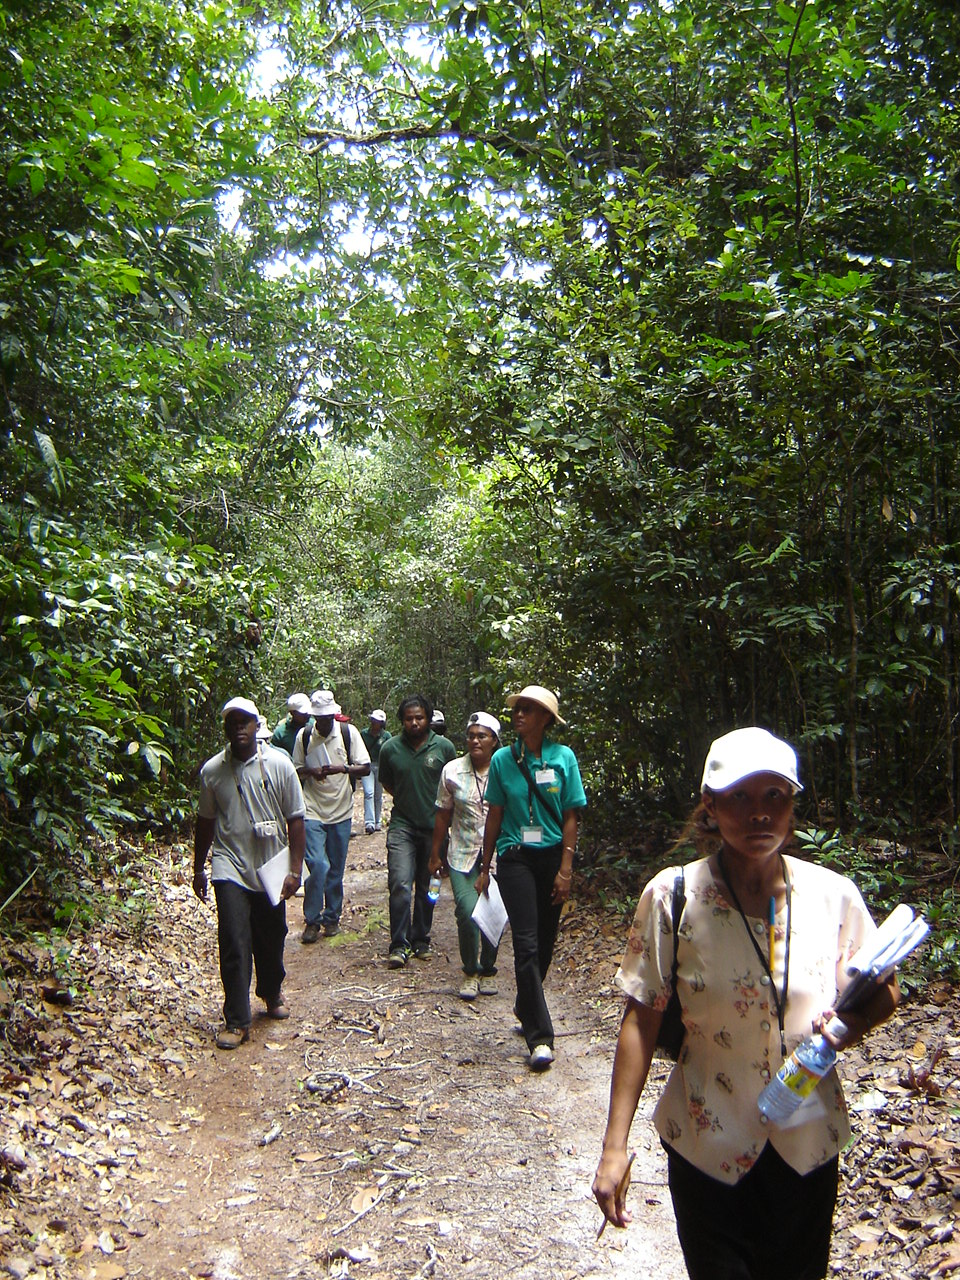 Field Visit to Forest Area in Guyana